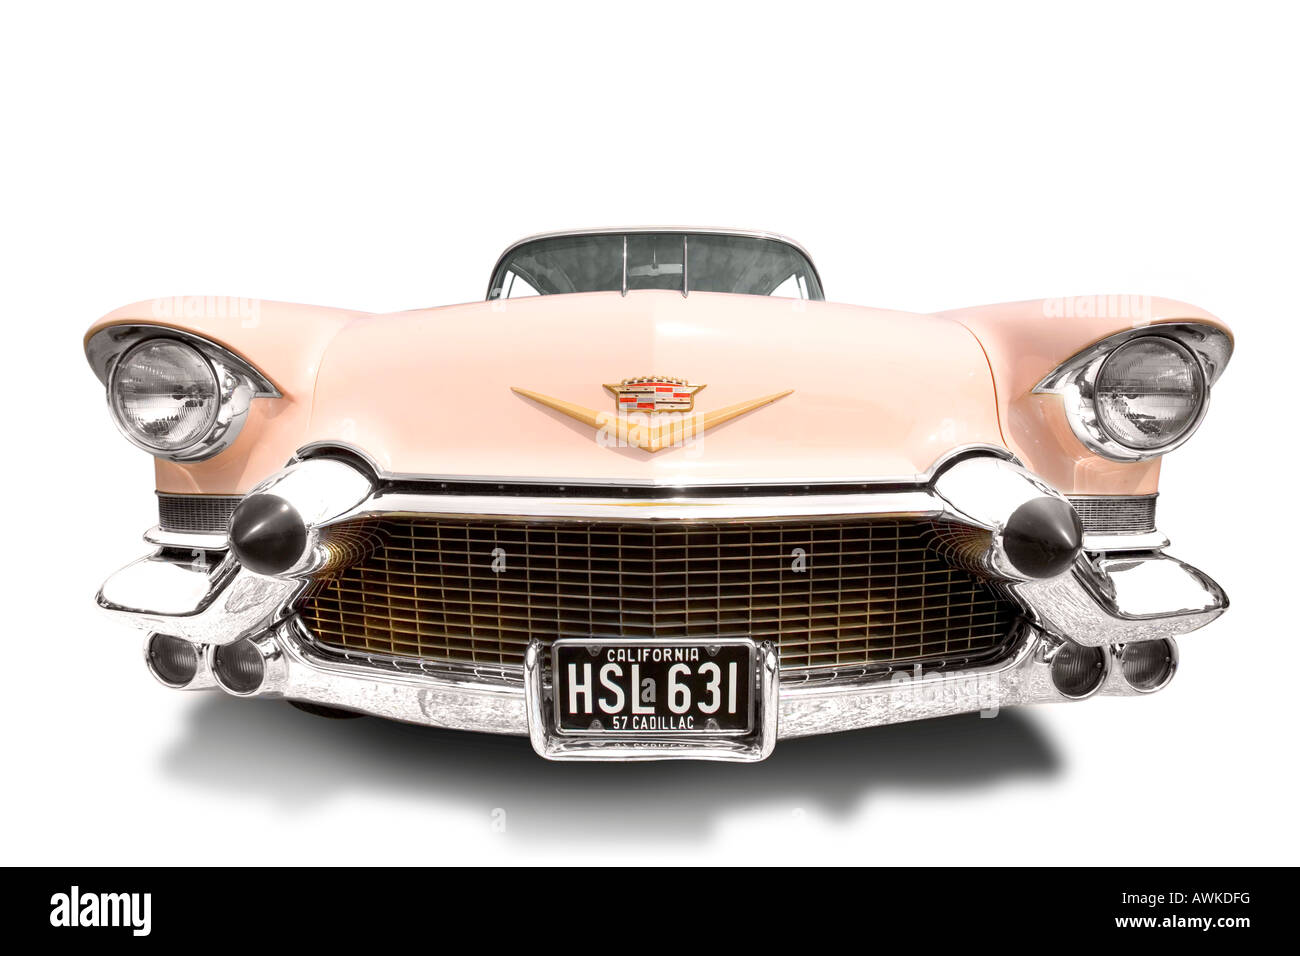 Close focus wide angle front view of a retro pink Cadillac on a pure white background. Stock Photo